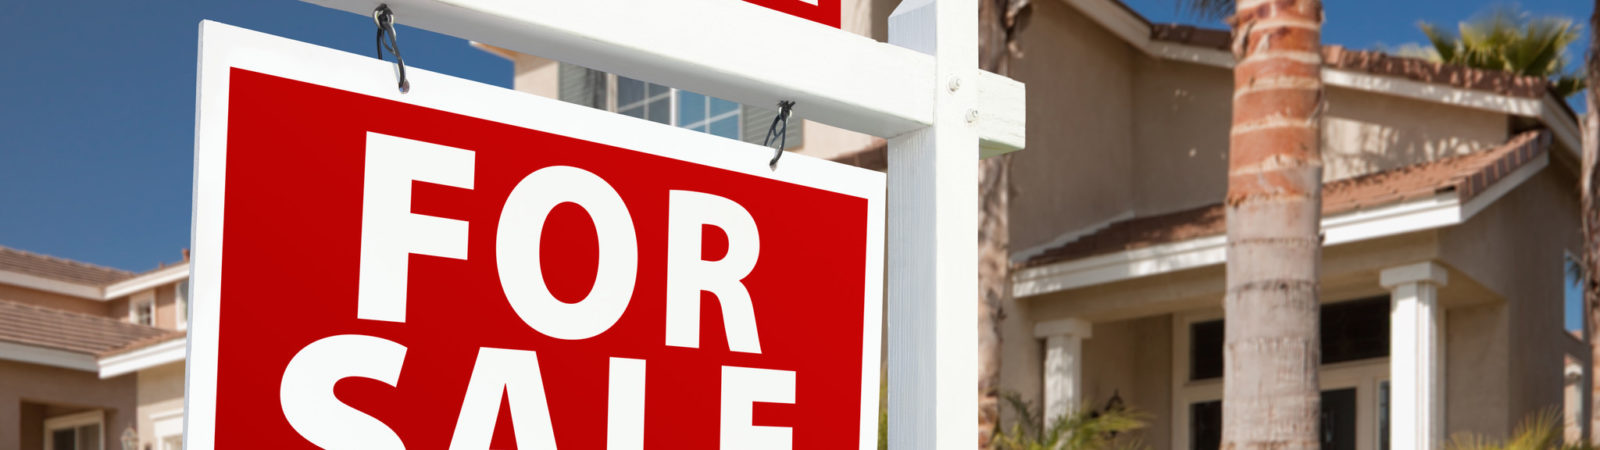 When should a Short Sale Be Considered?